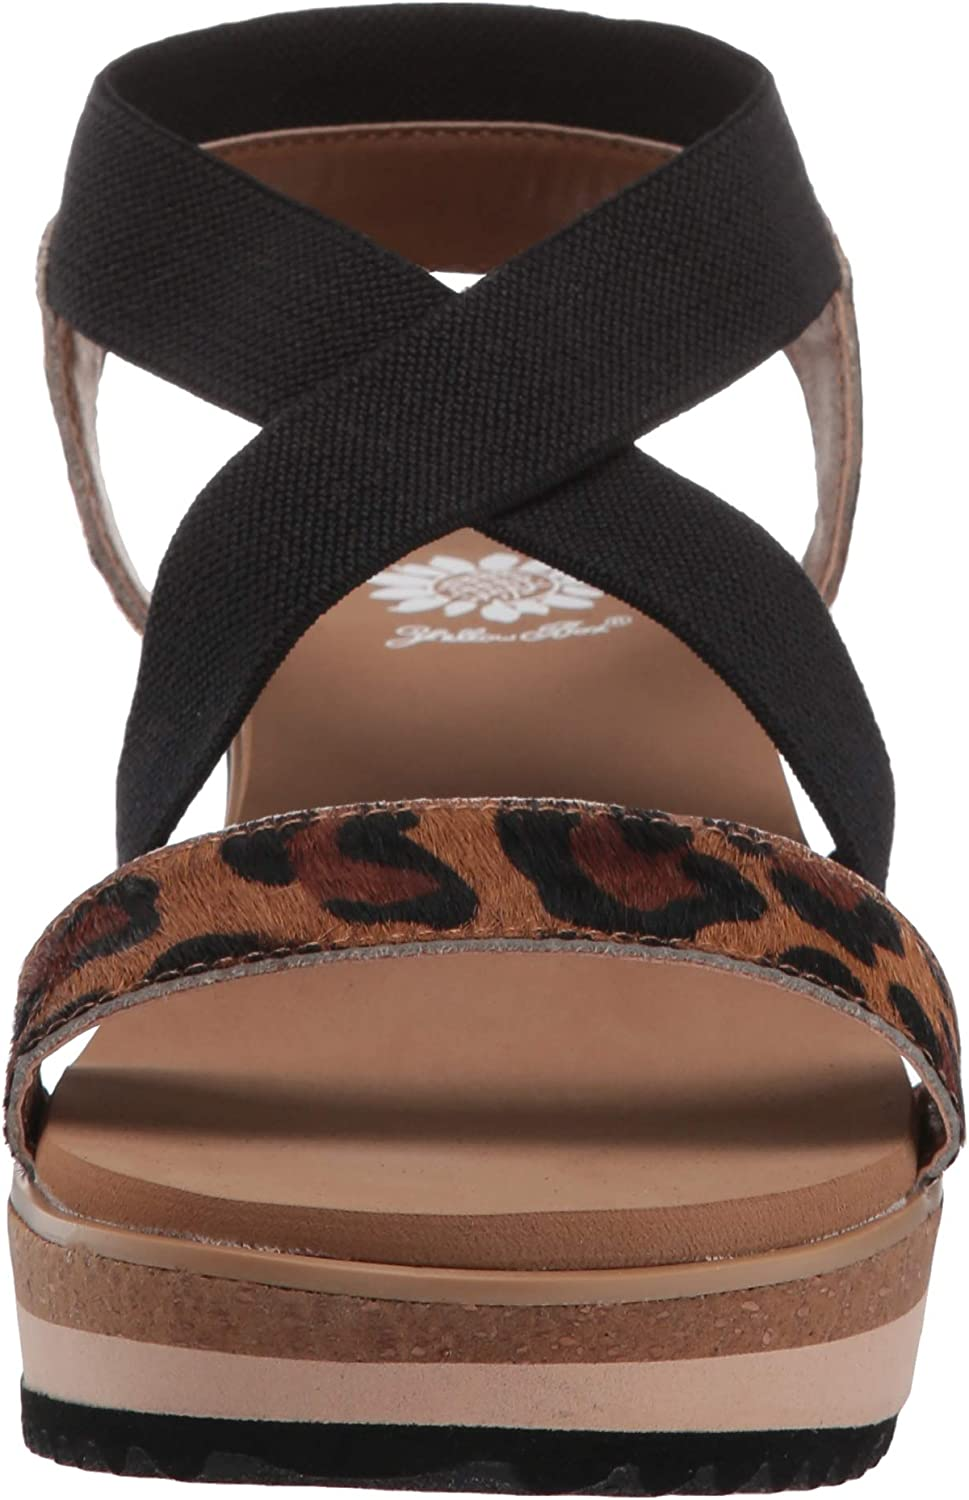 Details about  /Yellow BoxSOLEIL Braided Woven Strap Flip Flops